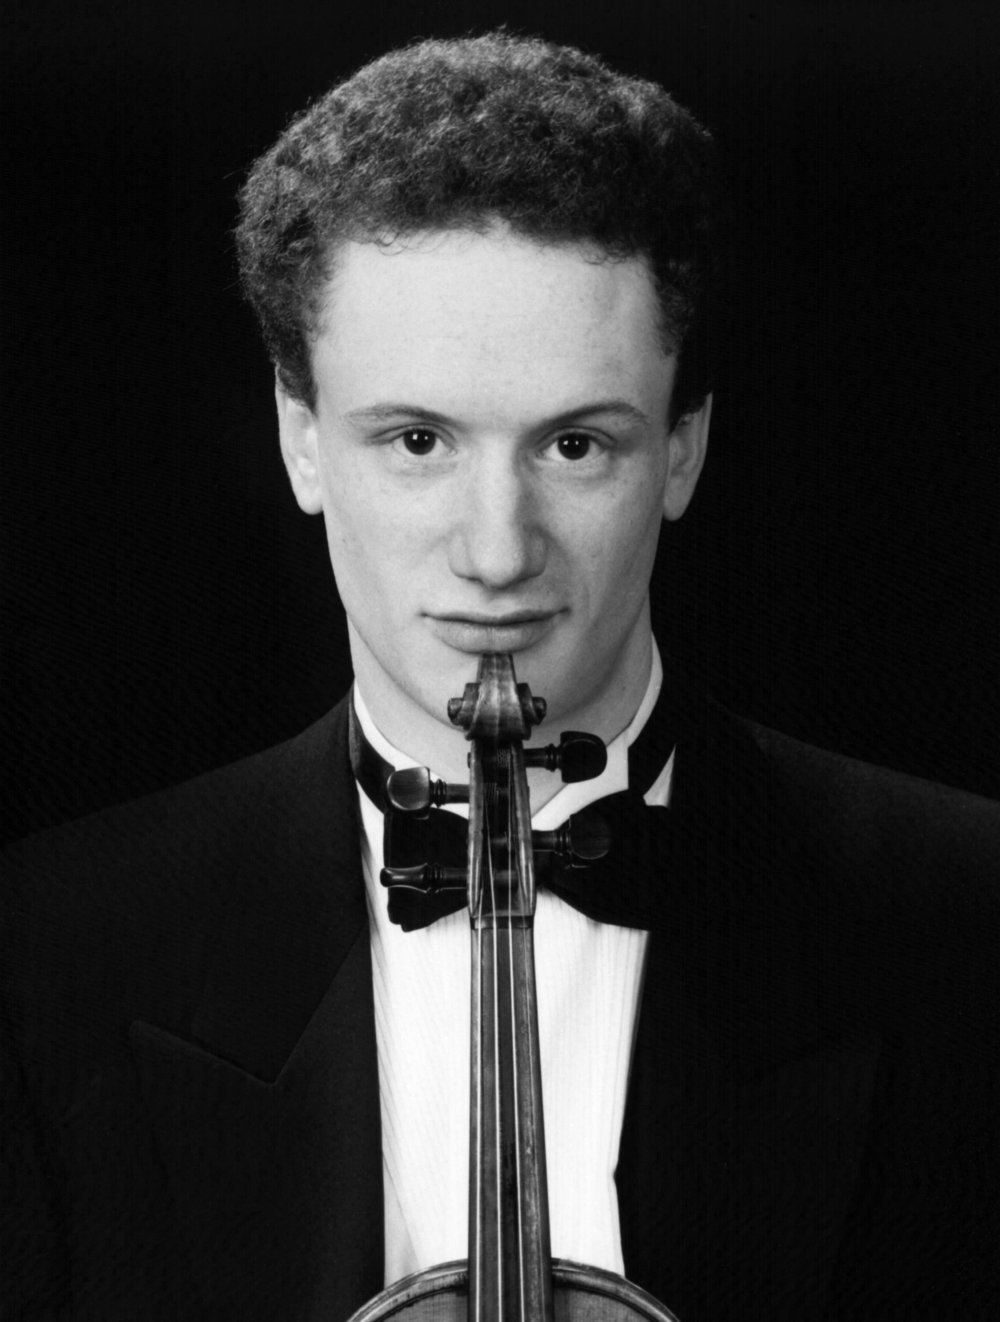 - Edward studied violin with Rodney Friend and graduated from the Royal College of Music with an MMus in performance studies, concurrently obtaining a BSc with Joint Honours in Physics with Music from Imperial College London. He also studied viola with Amanda Denley at the Guildhall School of Music. Edward joined the first violin section of the orchestra of English National Opera, and the English Chamber Orchestra. Since then he has played much of the major operatic repertoire at ENO and the chamber and classical repertoire with ECO. He has continued to enjoy playing the viola regularly with the London Octave and enjoys exploring the chamber music repertoire.